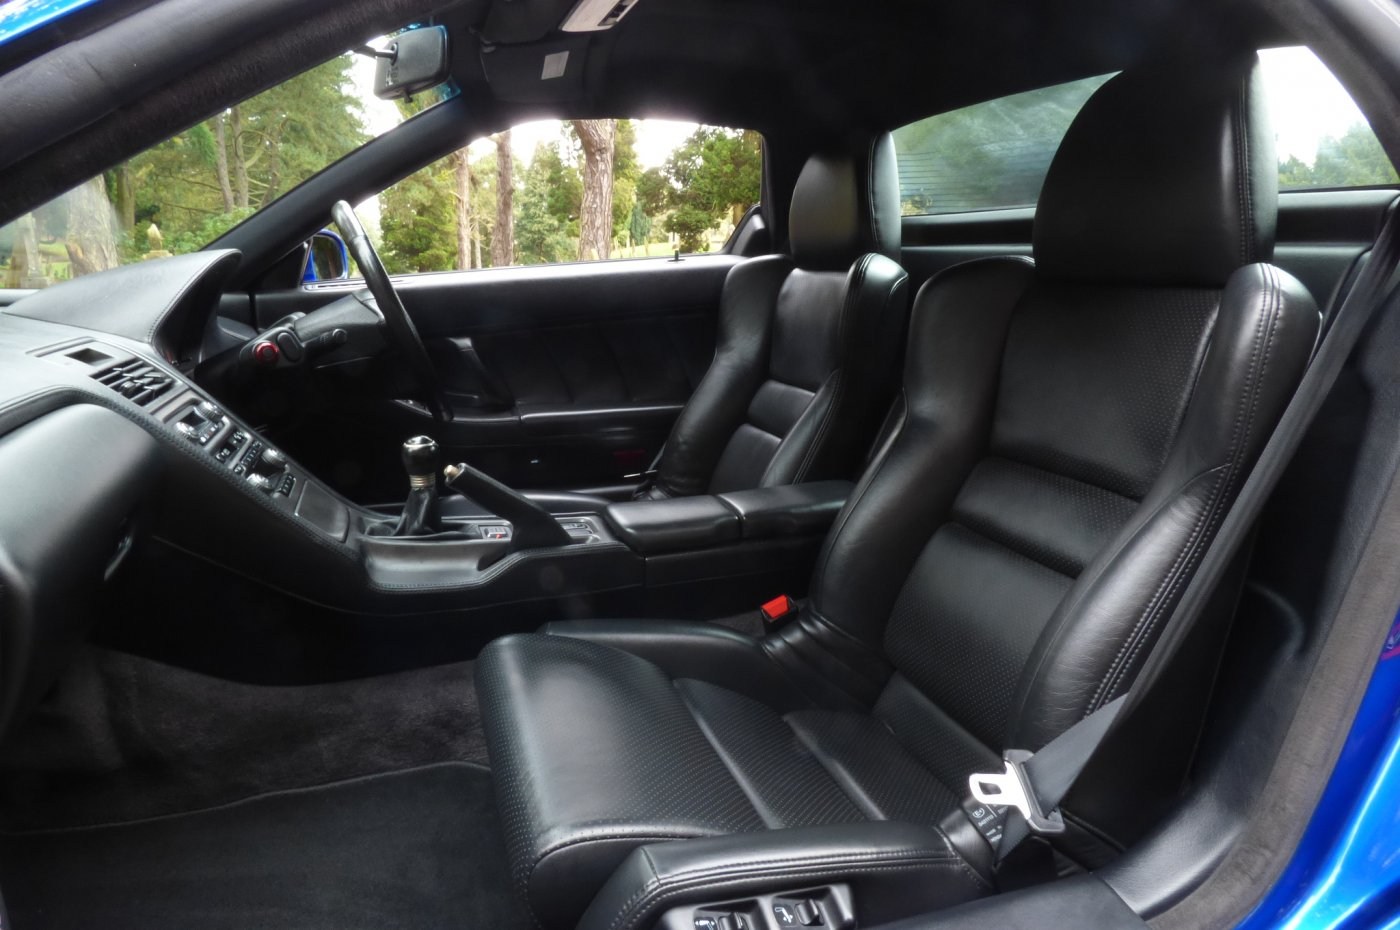 For Sale Jenson Buttons Old 2004 Honda Nsx The Drive